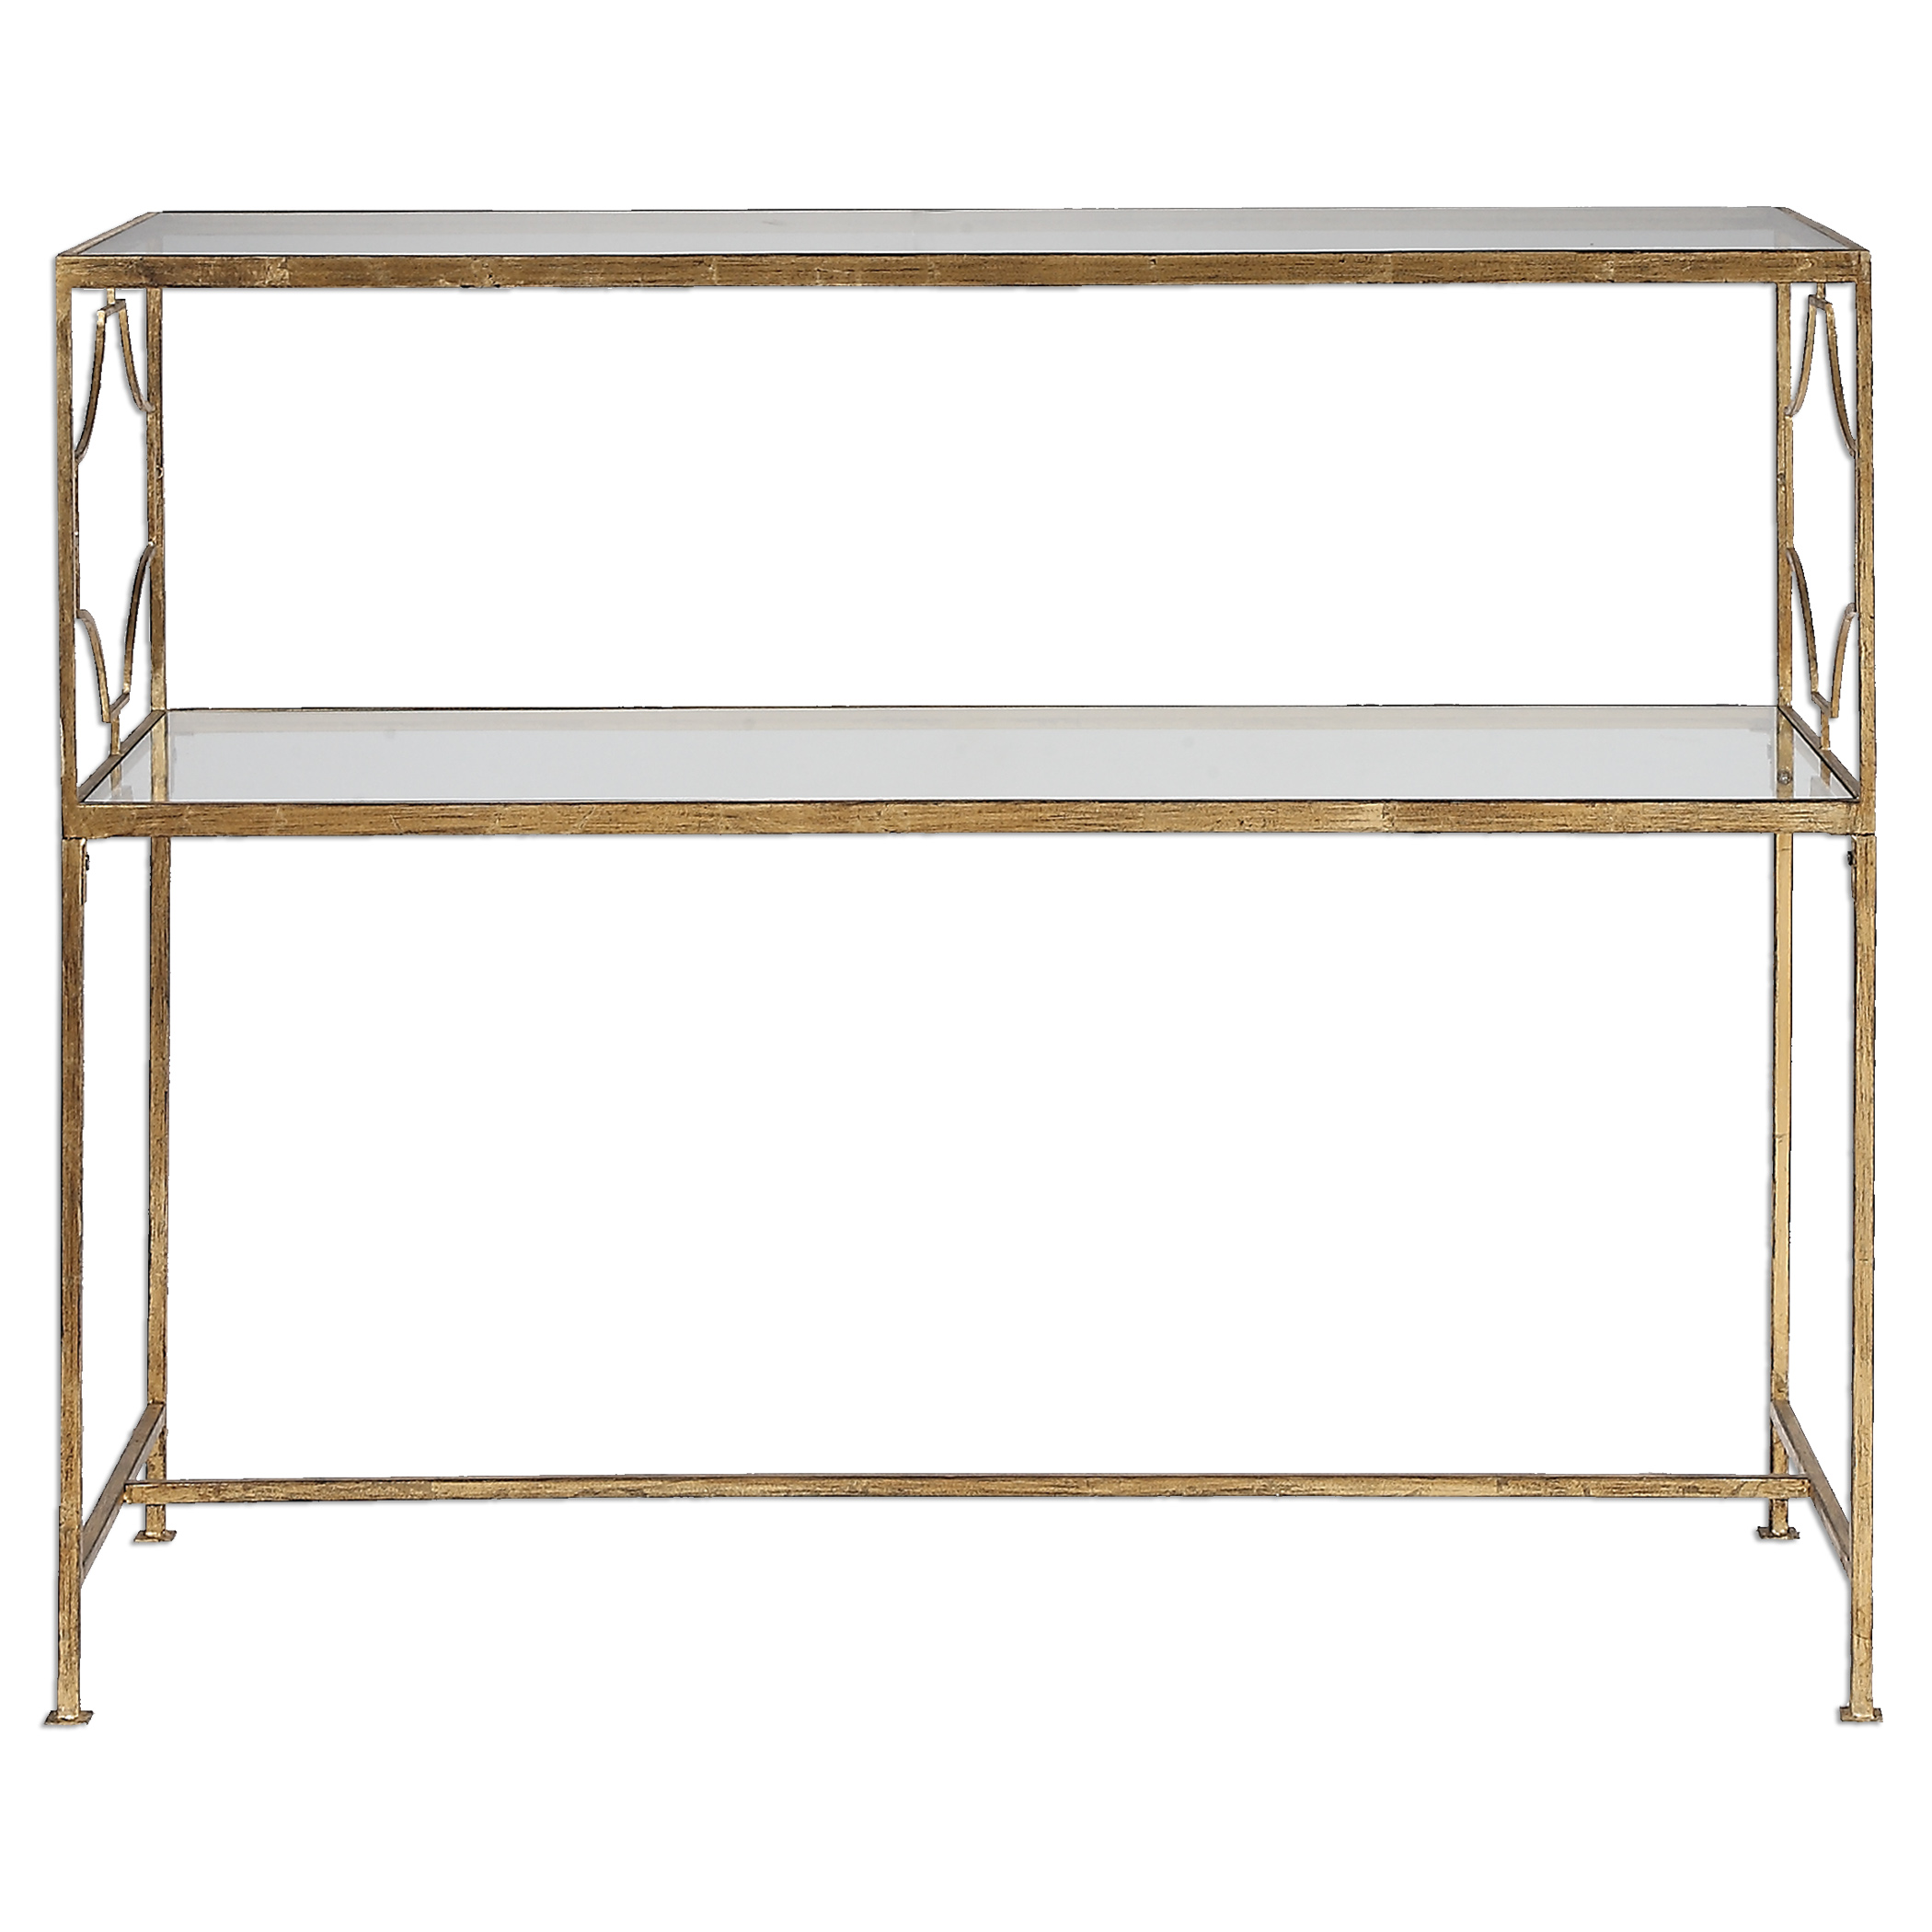 Uttermost Accent Furniture Genell Gold Iron Console Table - Item Number: 24539